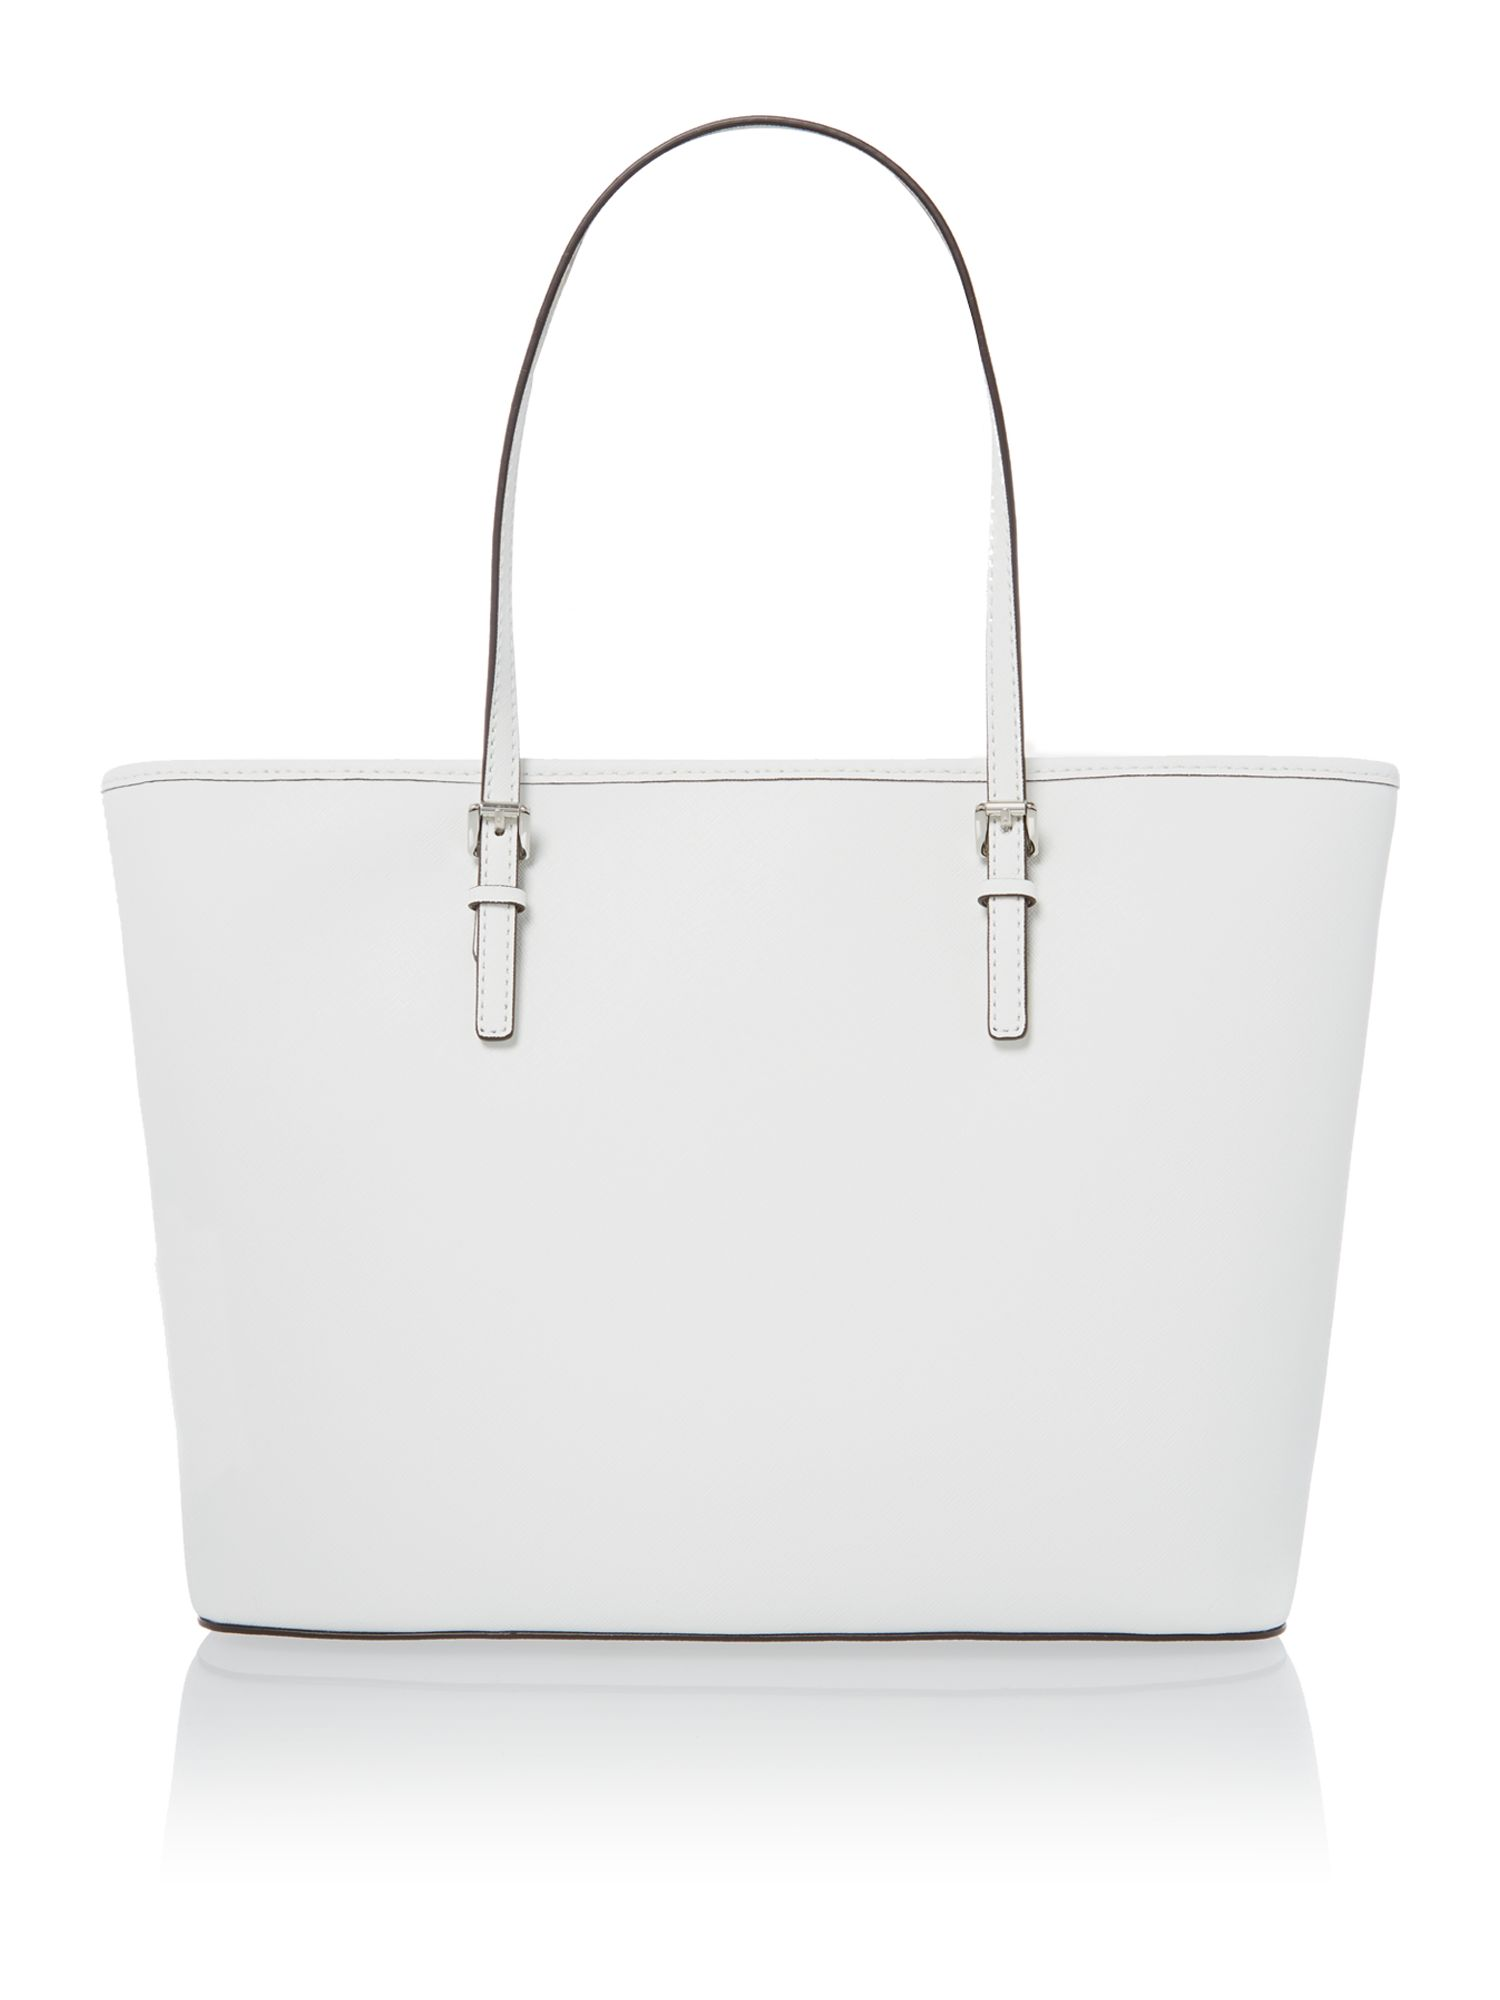 Jet Set Travel white tote bag